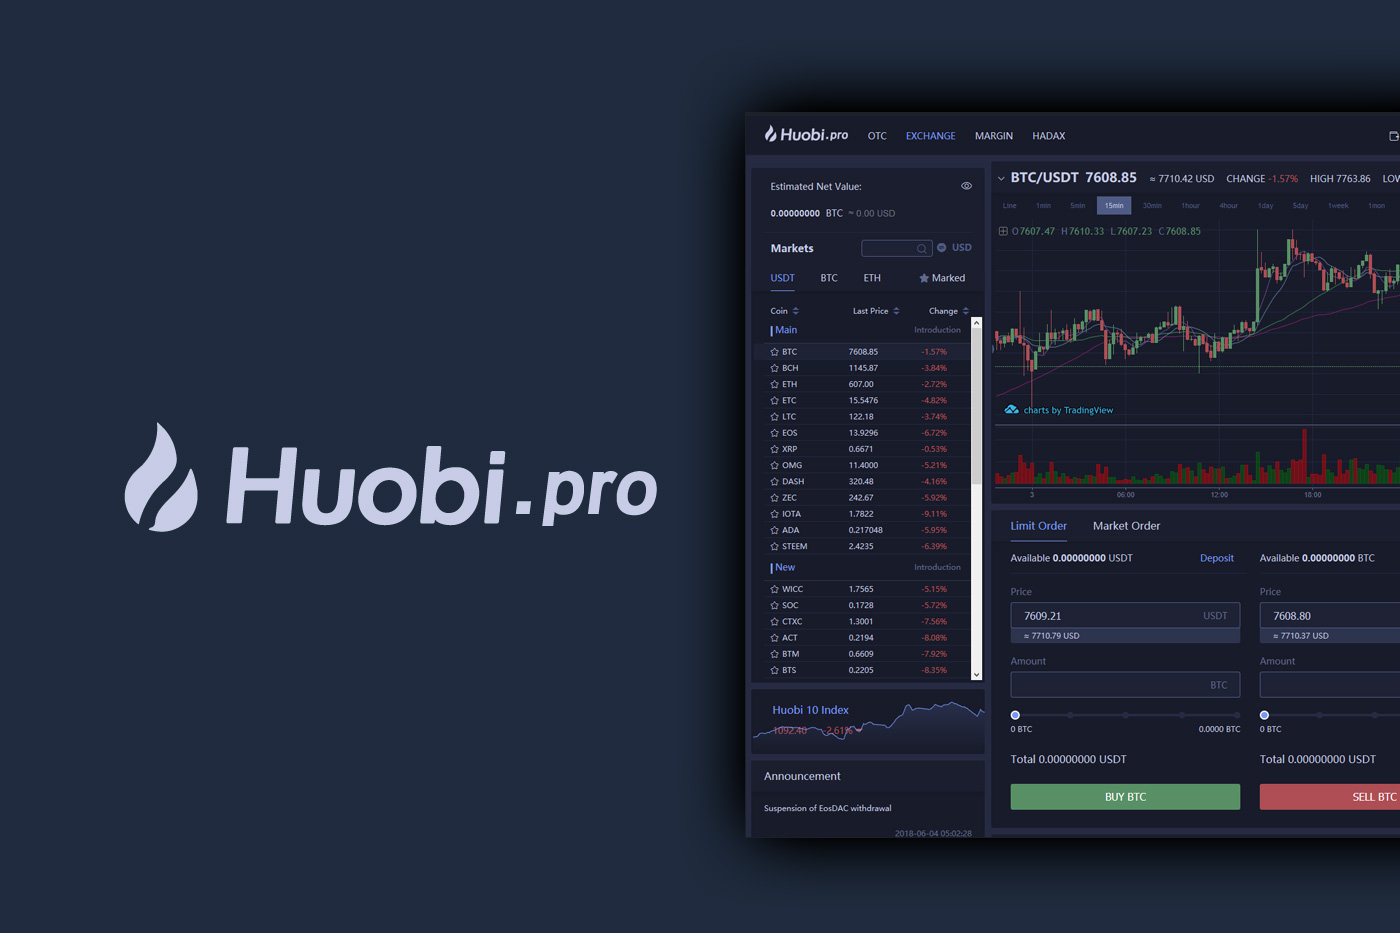 Huobi.pro - Safely Buy and Sell Cryptocurrency - Bitcoin, XRP, Tron, Ethereum, Litecoin, Ontology, NEO, Stellar Lumens